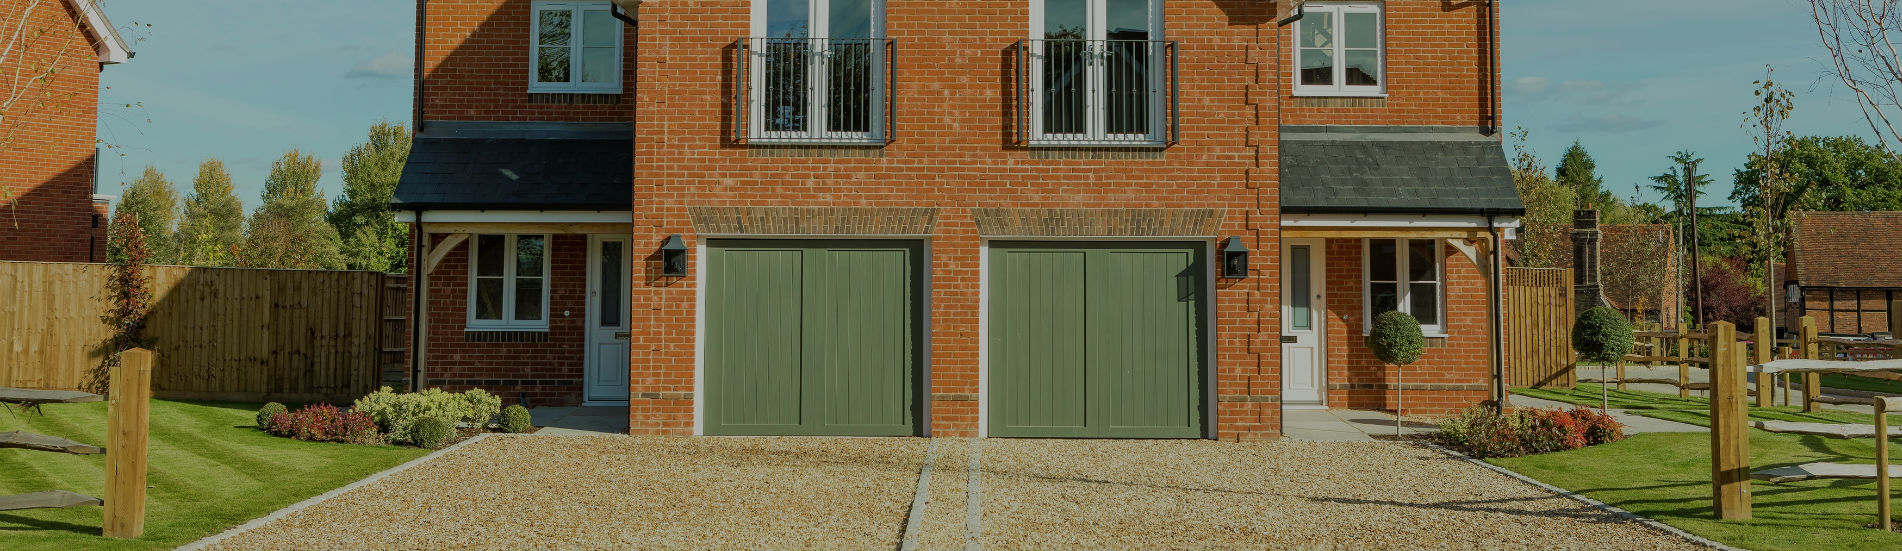 Garage Doors Installation and Suppliers - Millgate Highfield Development